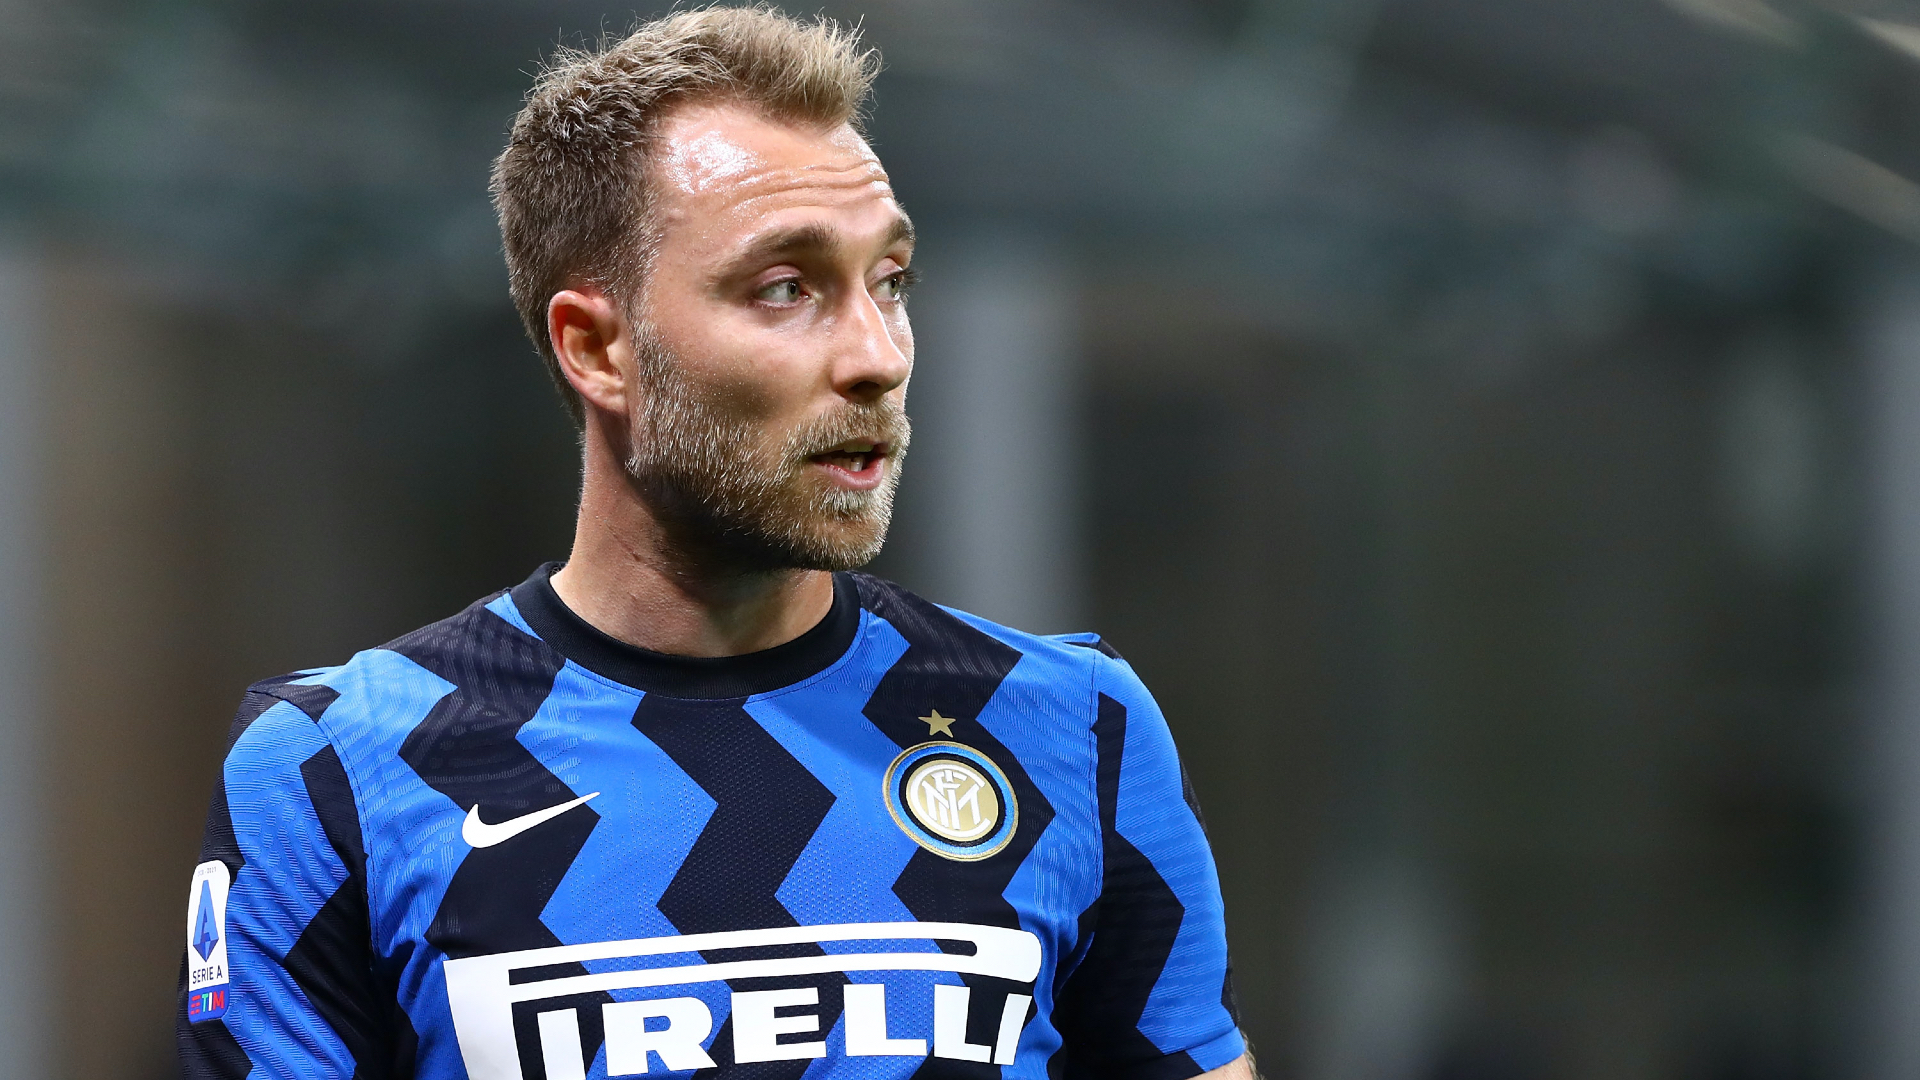 'Eriksen will be first to ask for a transfer' – Marotta expecting Inter outcast to seek exit